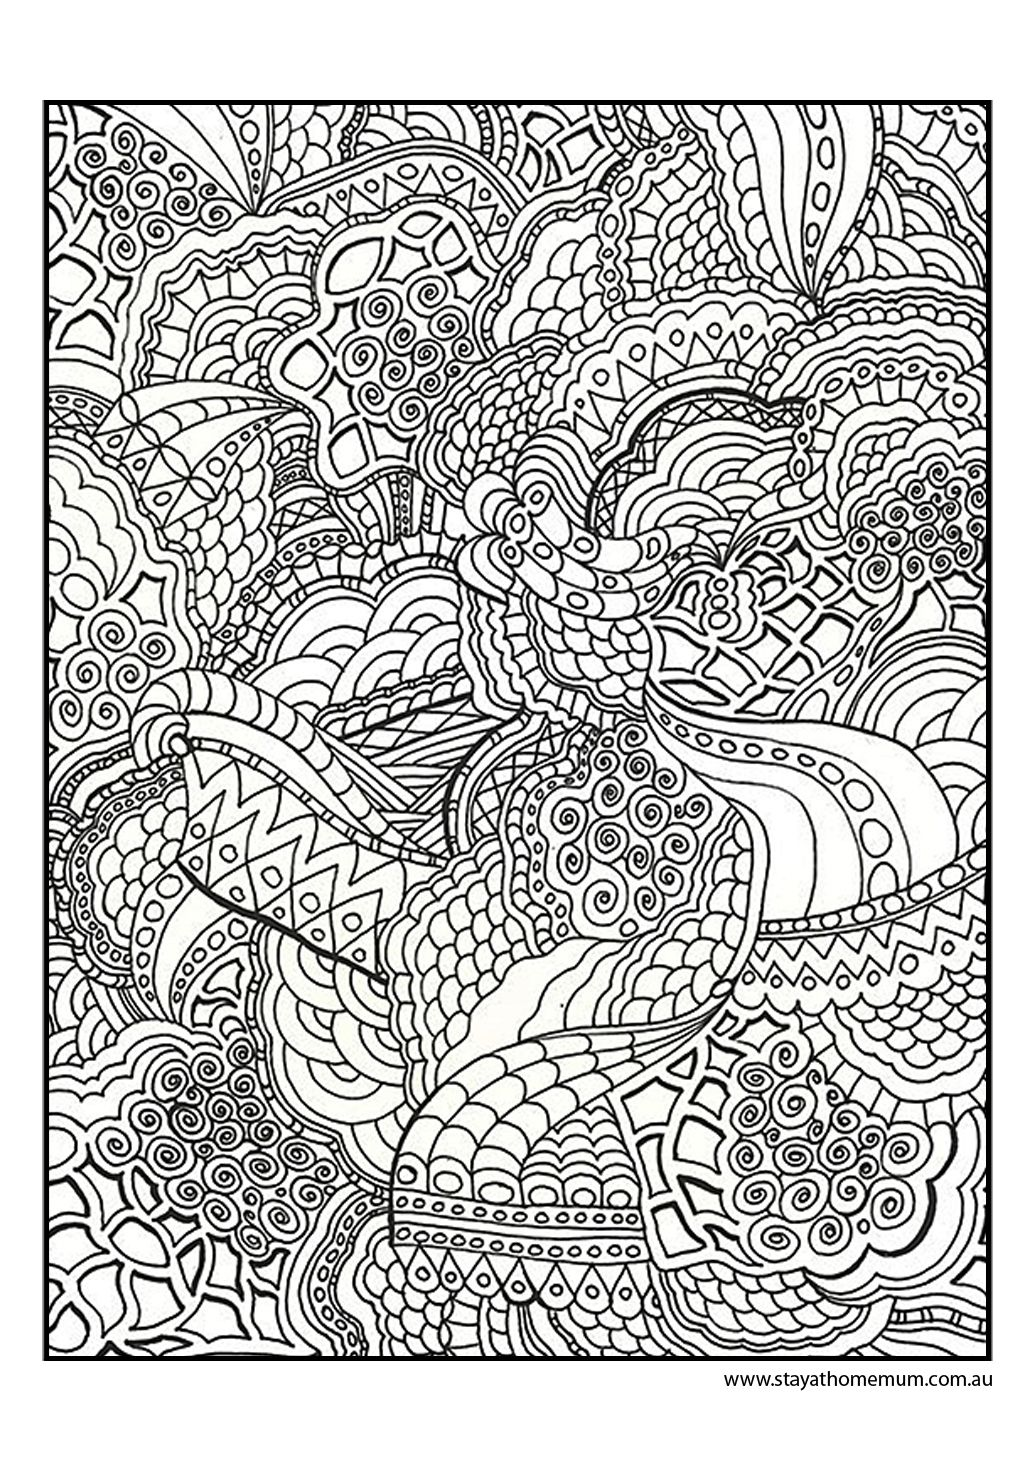 printable colouring pages for kids and adultsfun free printables - Coloring Posters Printable